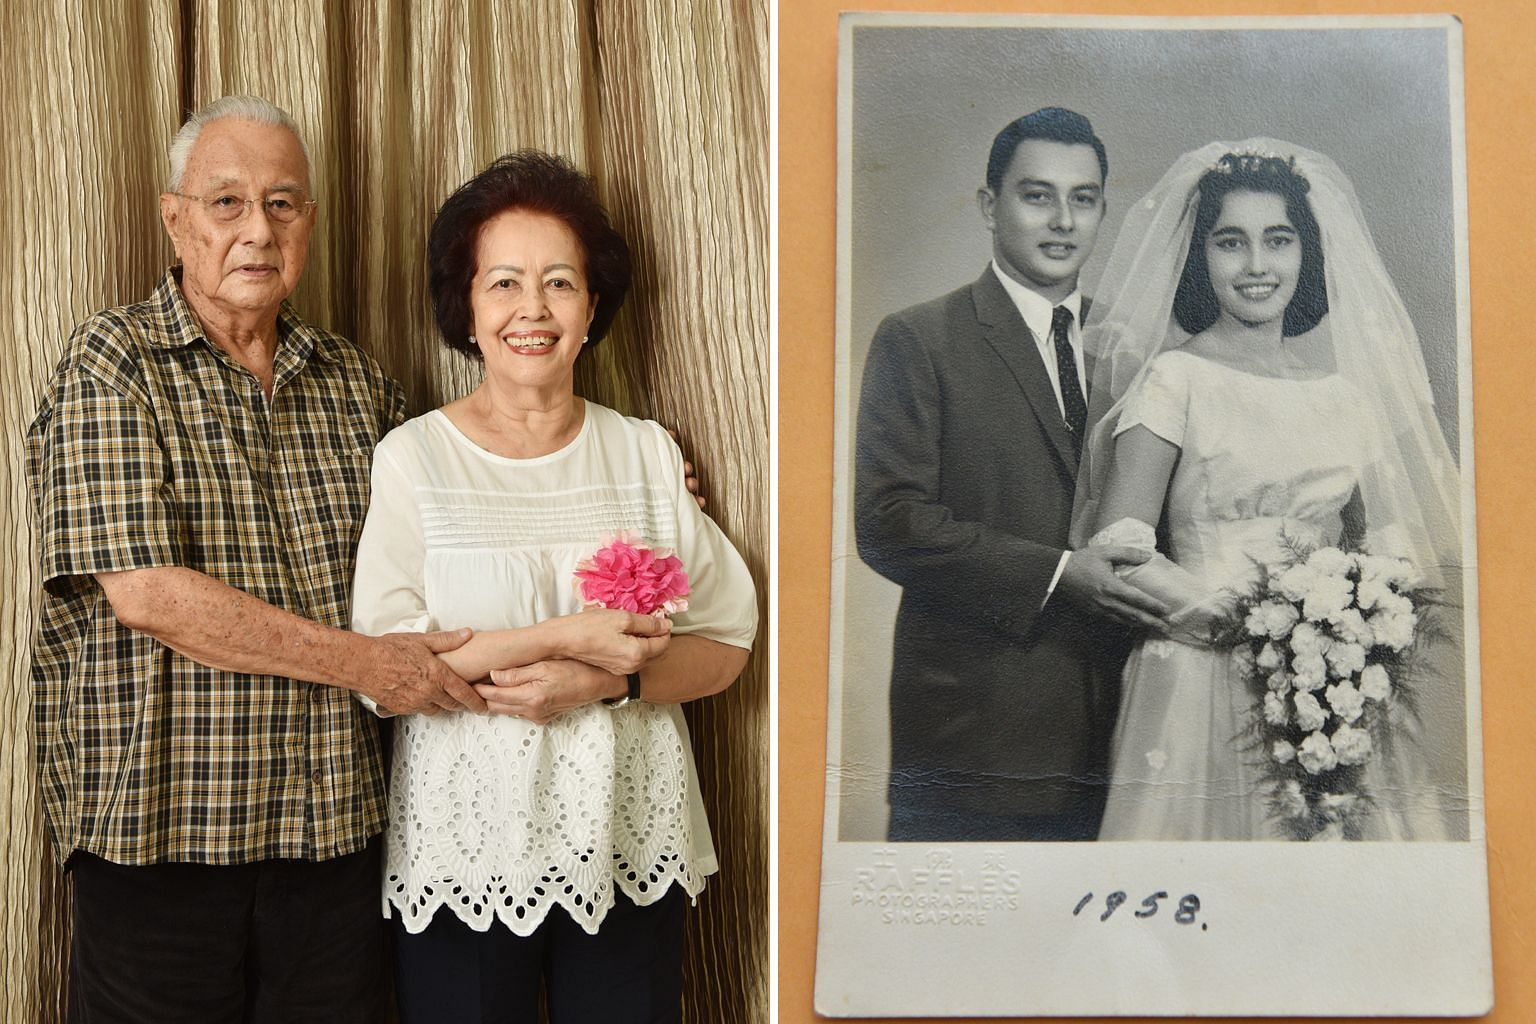 Mrs Marion Woodworth, who represented Singapore at the Miss Universe pageant in 1958, has been married to husband Robert for 60 years.